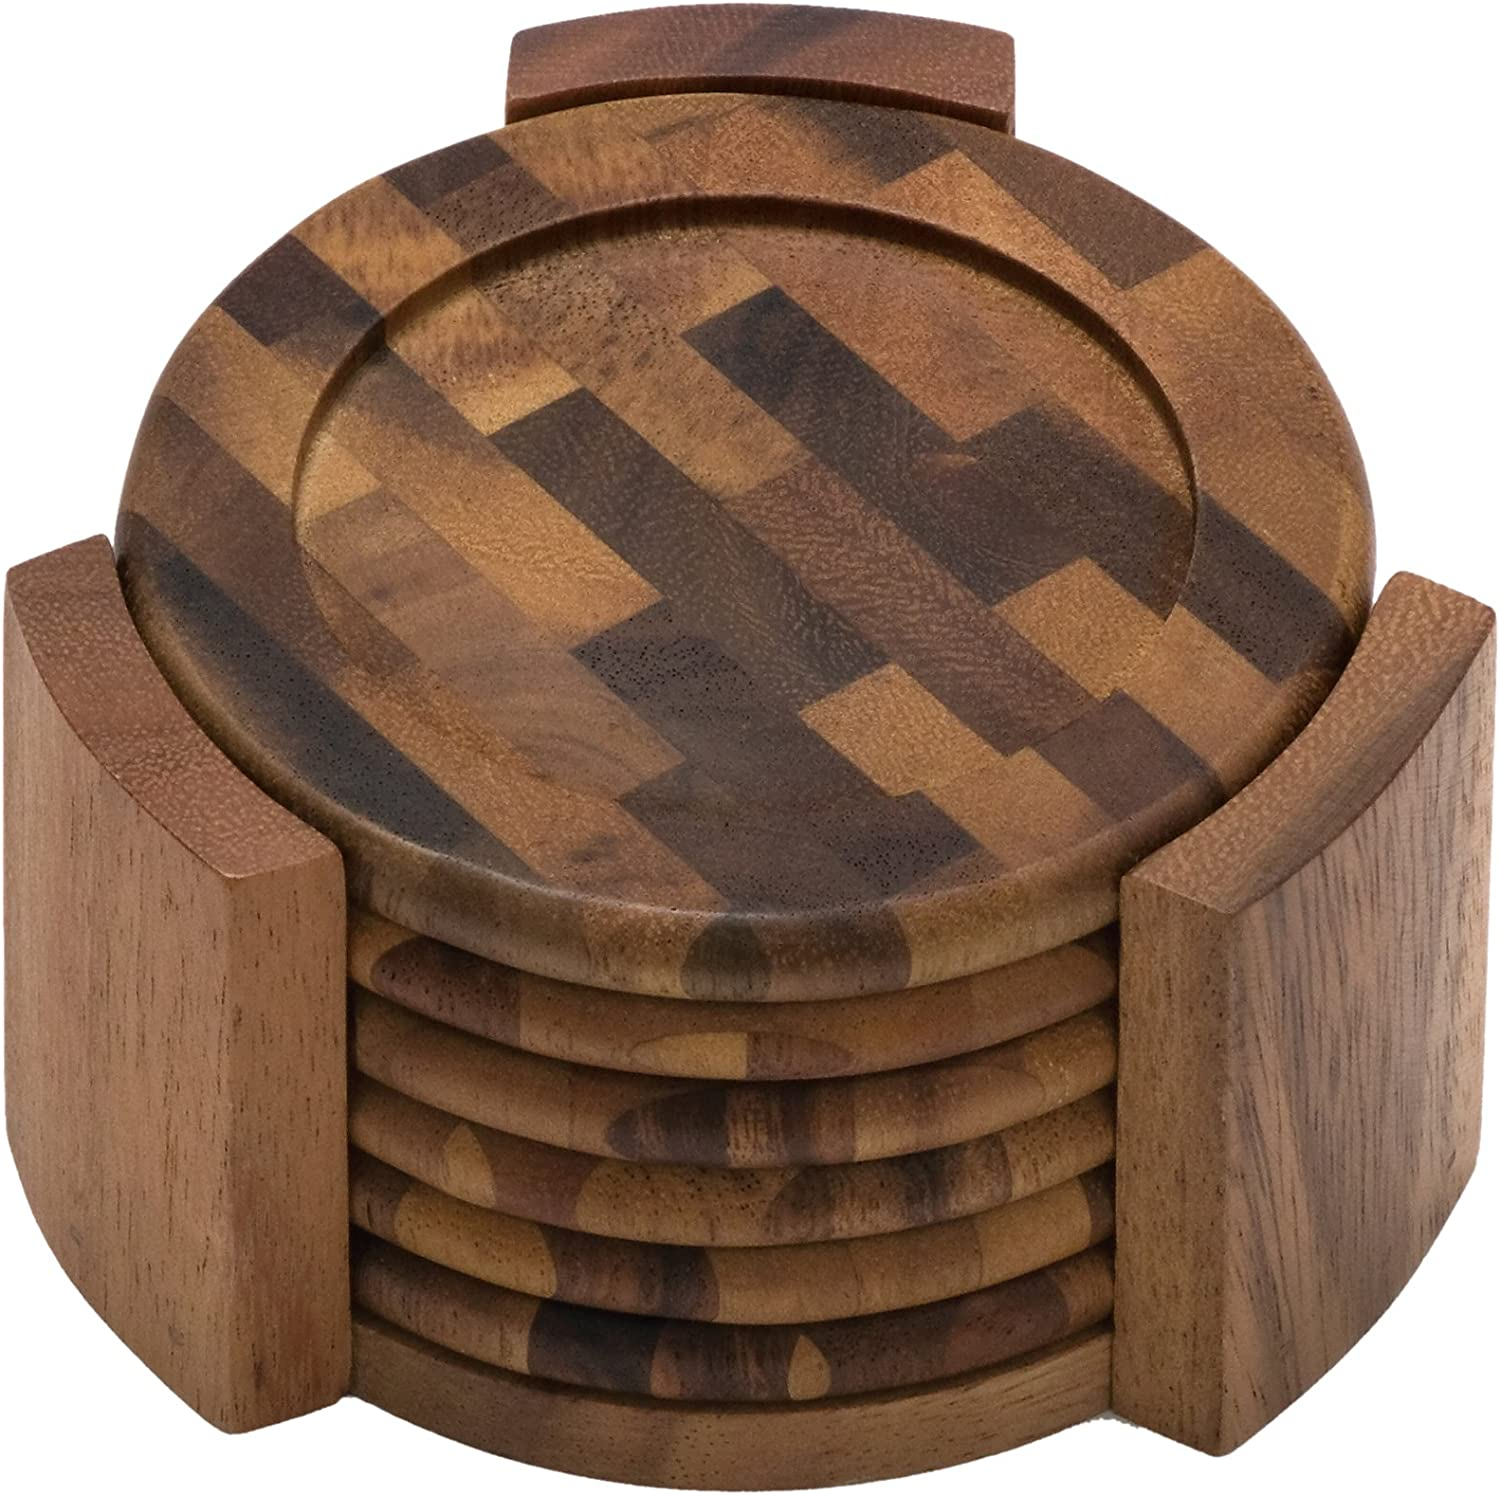 Lipper International Acacia End Grain Wood Round Coasters and Caddy